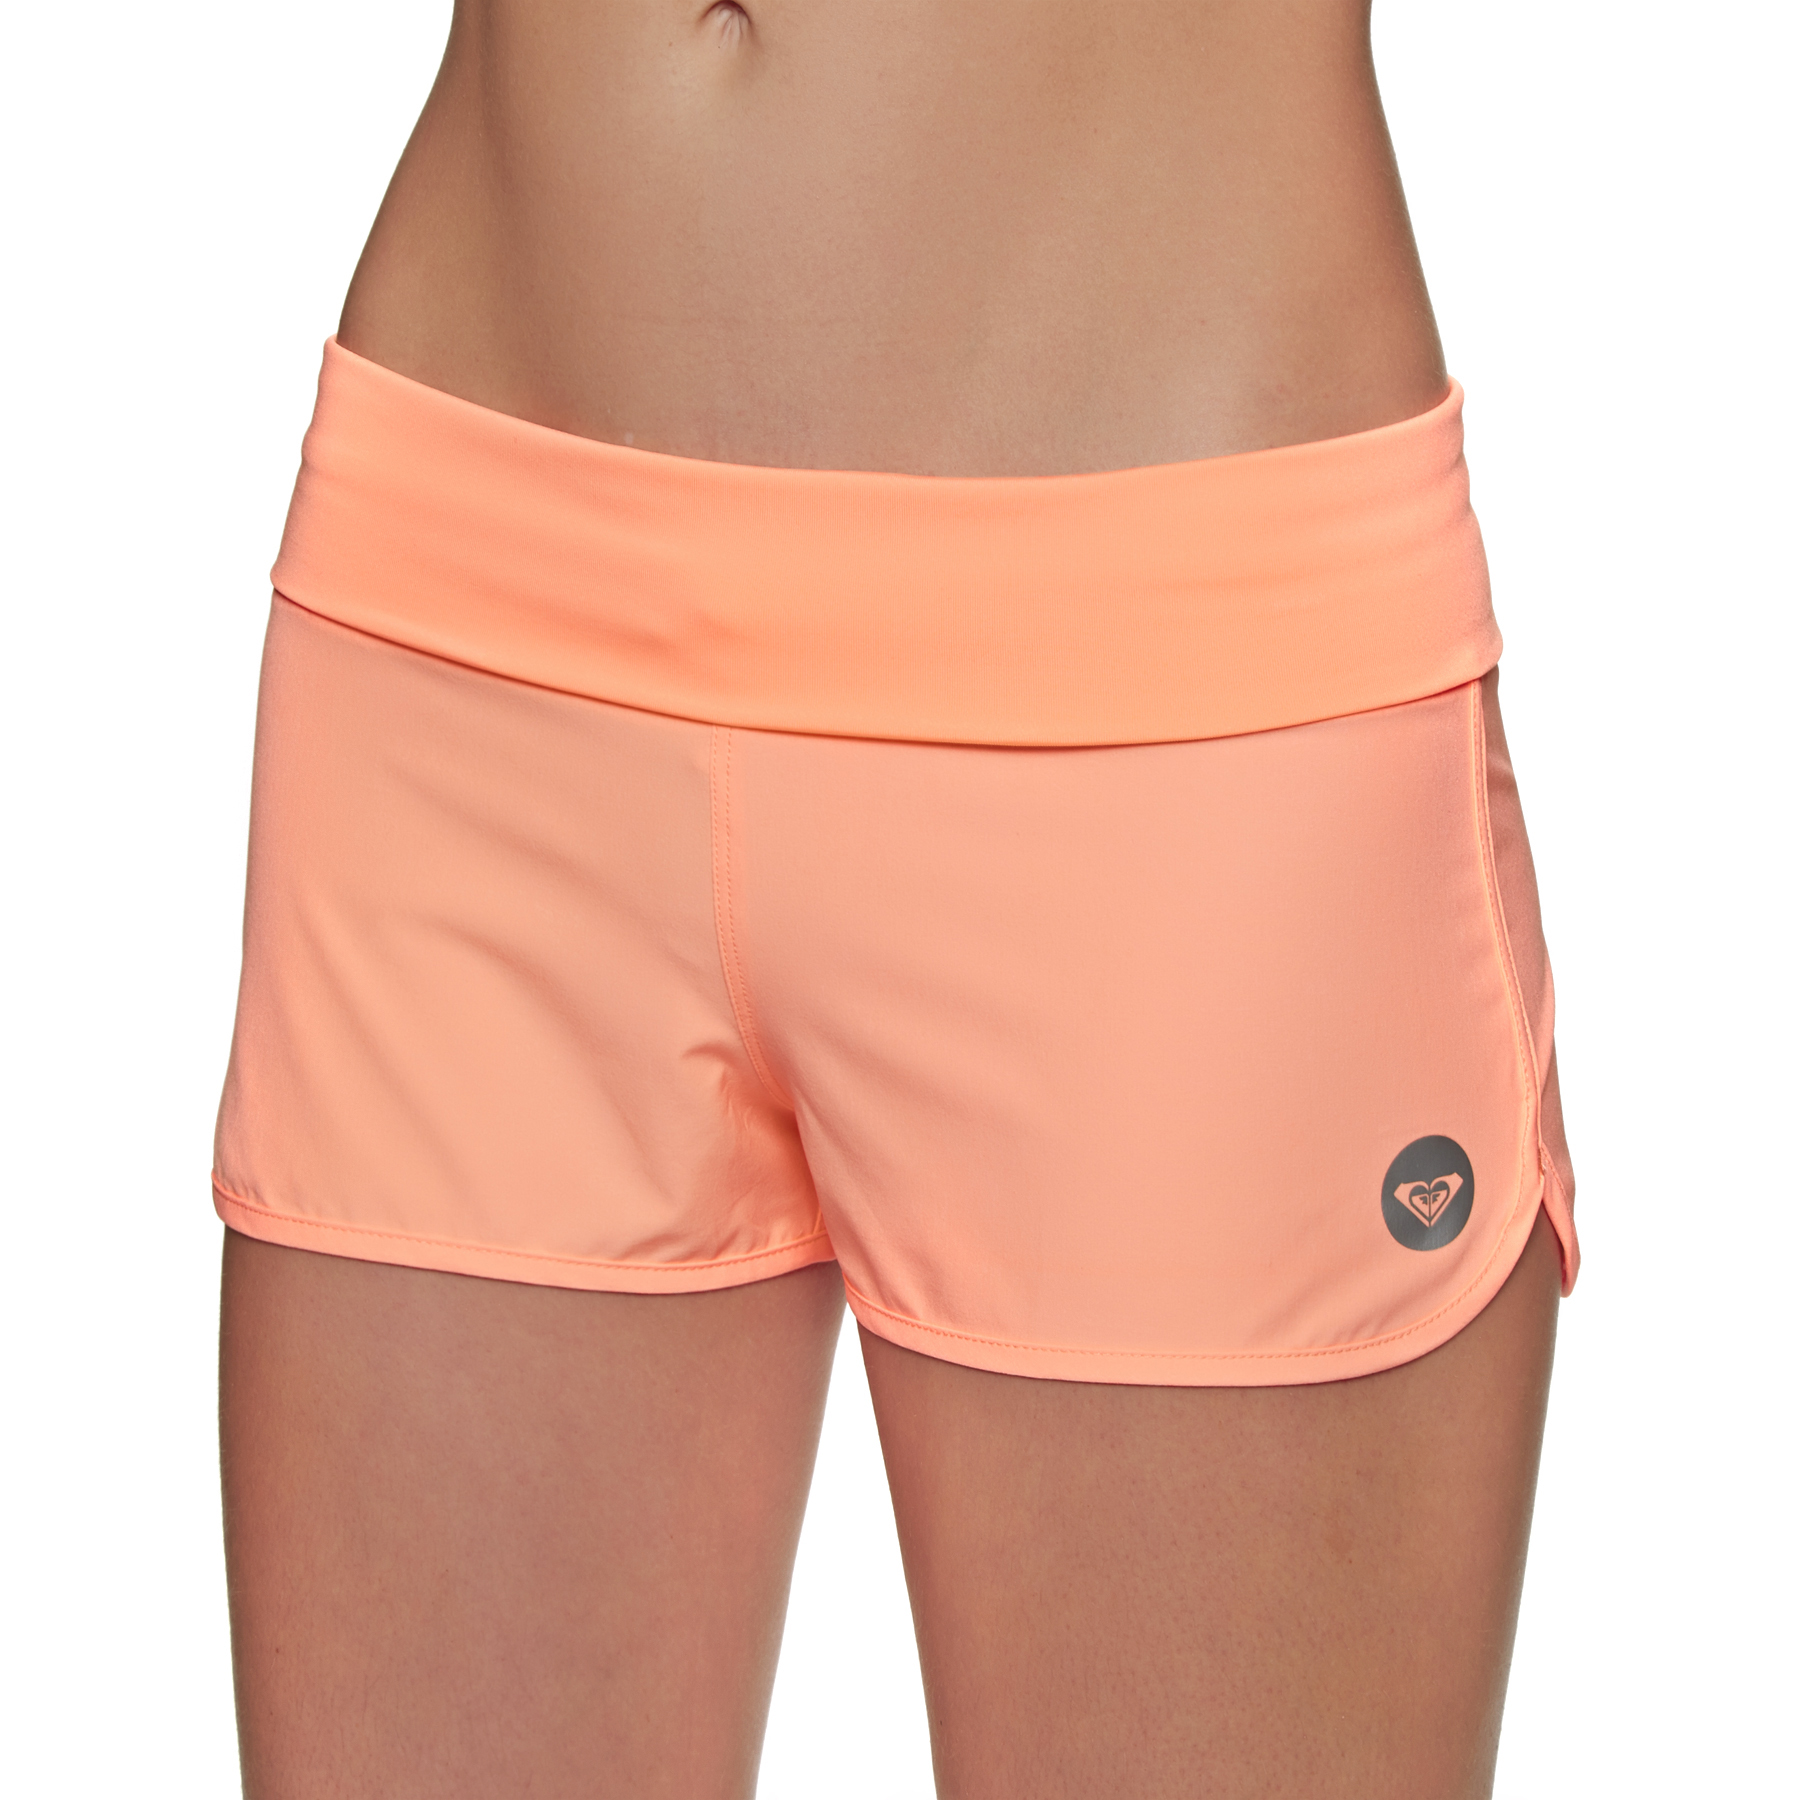 Roxy Womens Board Shorts